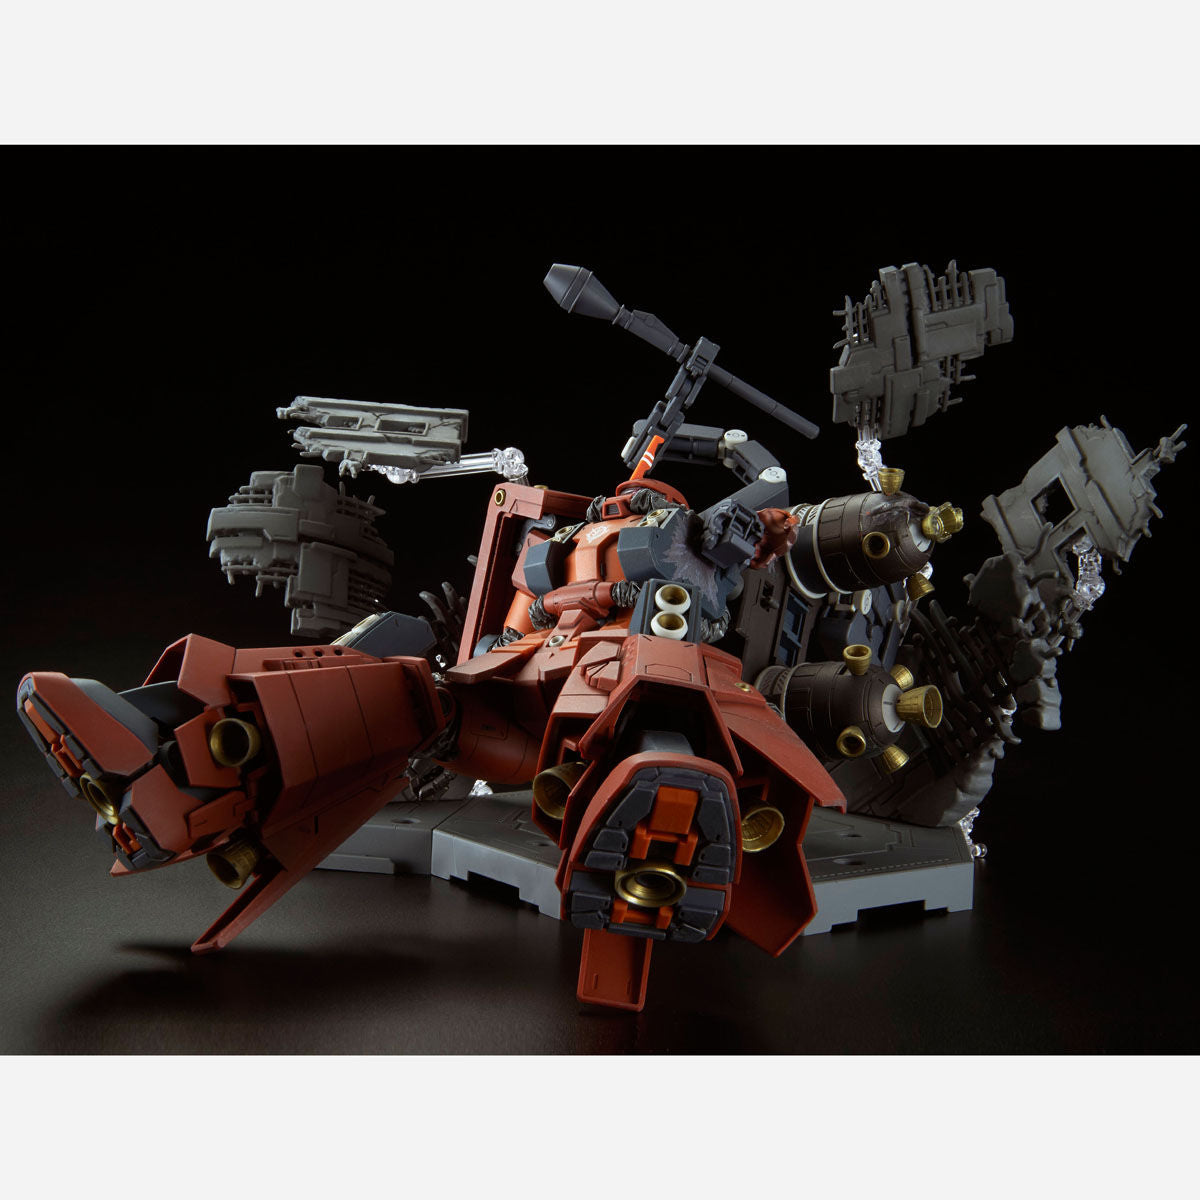 P-BANDAI: MG 1/100 PSYCHO ZAKU GUNDAM THUNDERBOLT VER. KA FINAL BATTLE VER. [End of December]